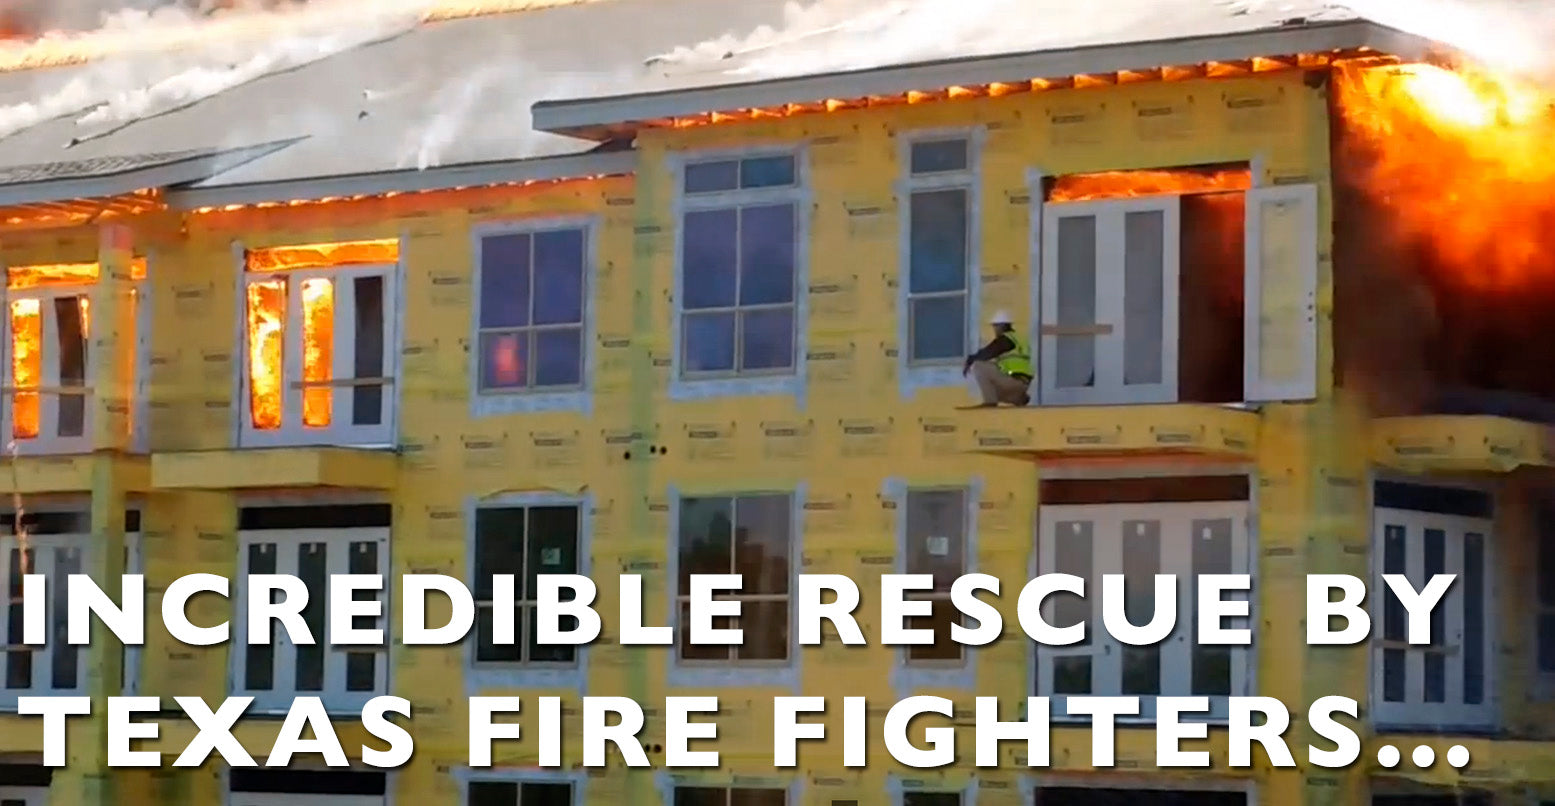 VIDEO: Incredible Rescue By Texas Fire Fighters...